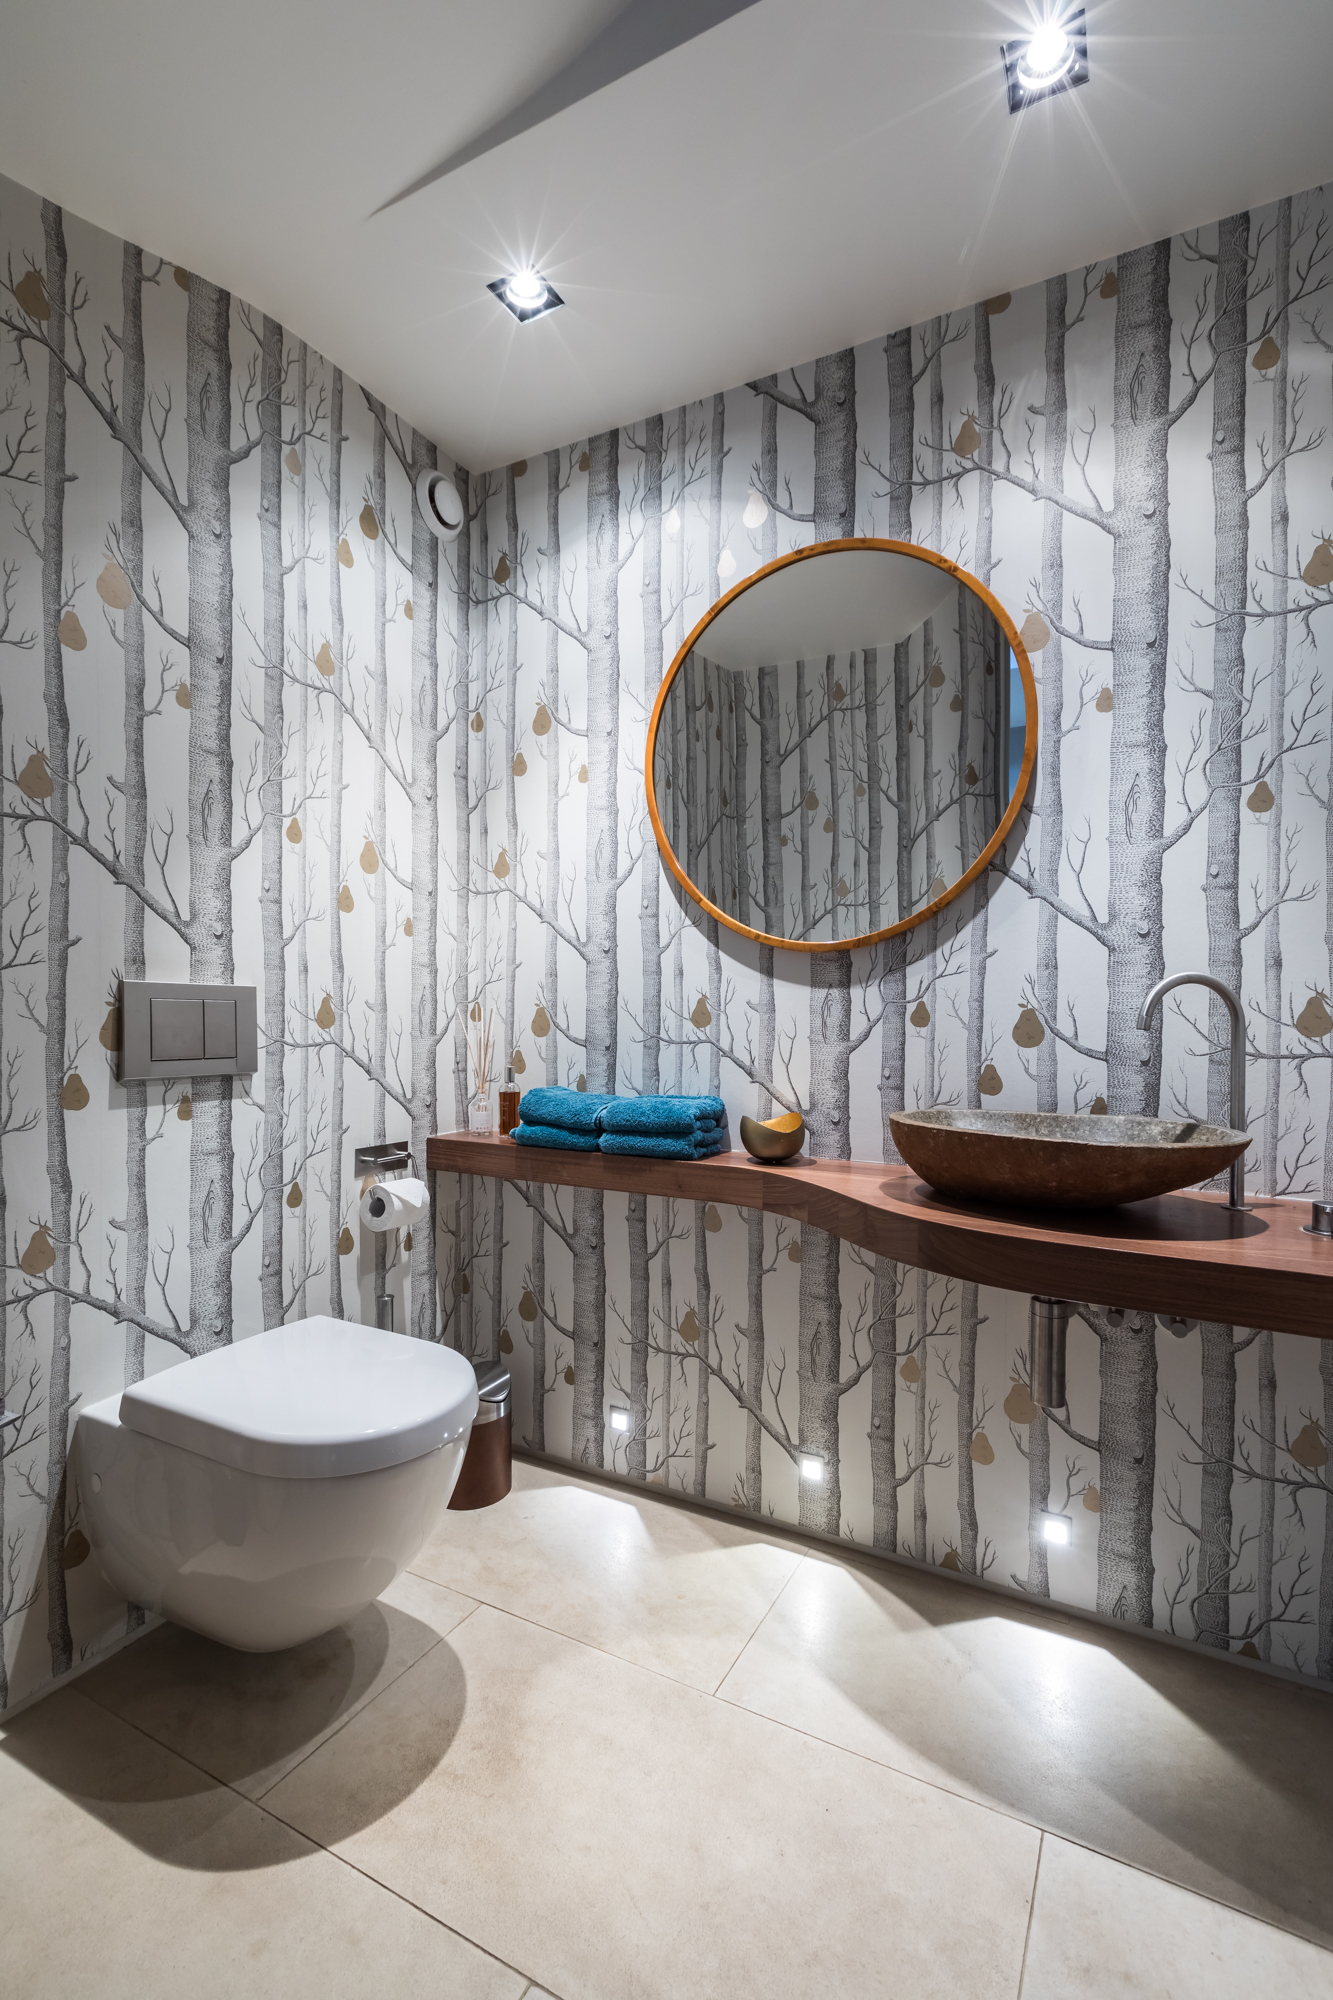 jonathan bond, interior photographer, bathroom toilet, holland park, london